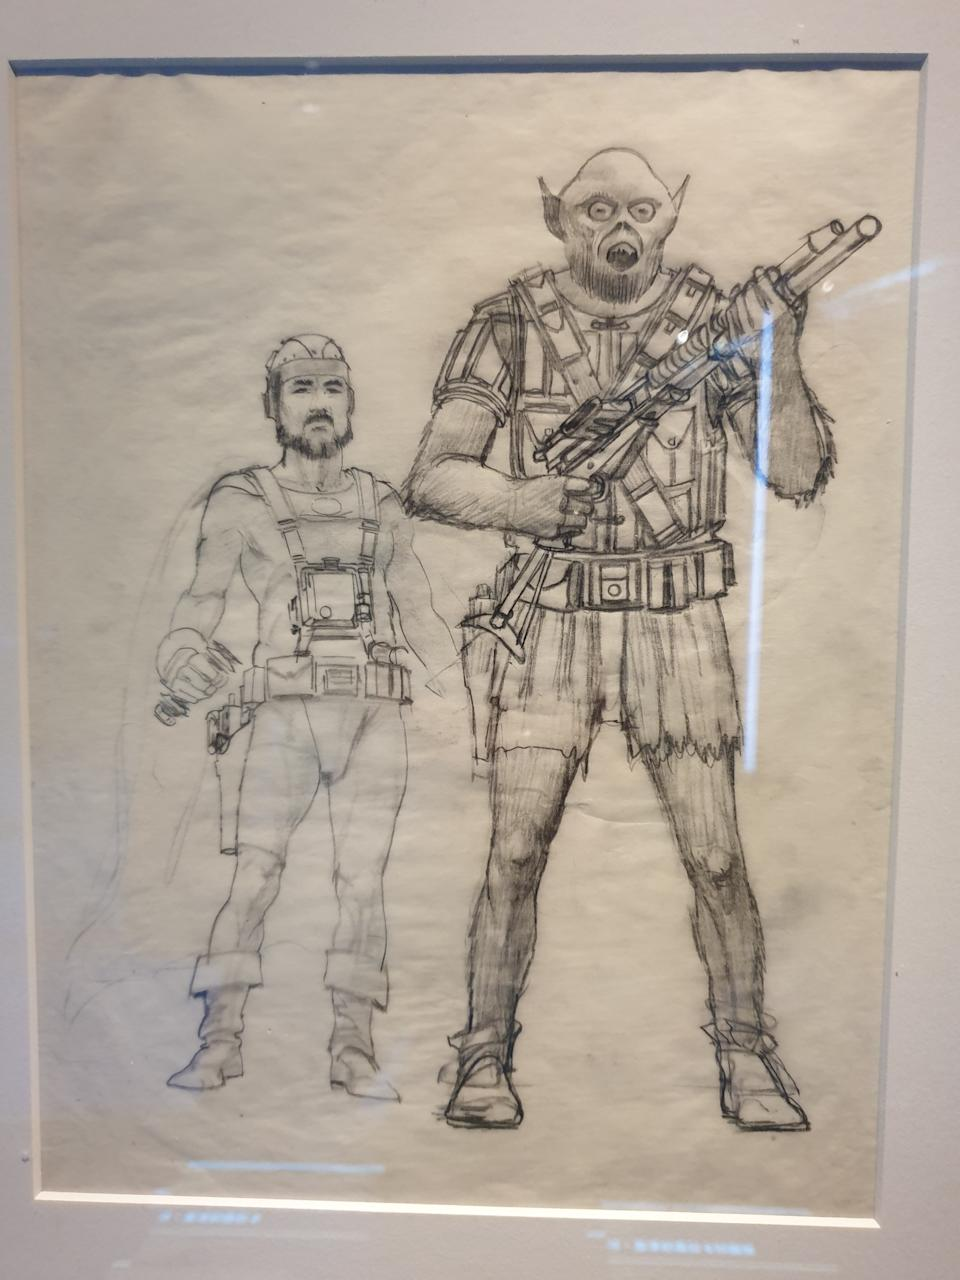 Early concept art of Han Solo and Chewbacca by Ralph McQuarrie at the Star Wars Identities exhibition in Singapore at the Artscience Museum. (Photo: Teng Yong Ping)